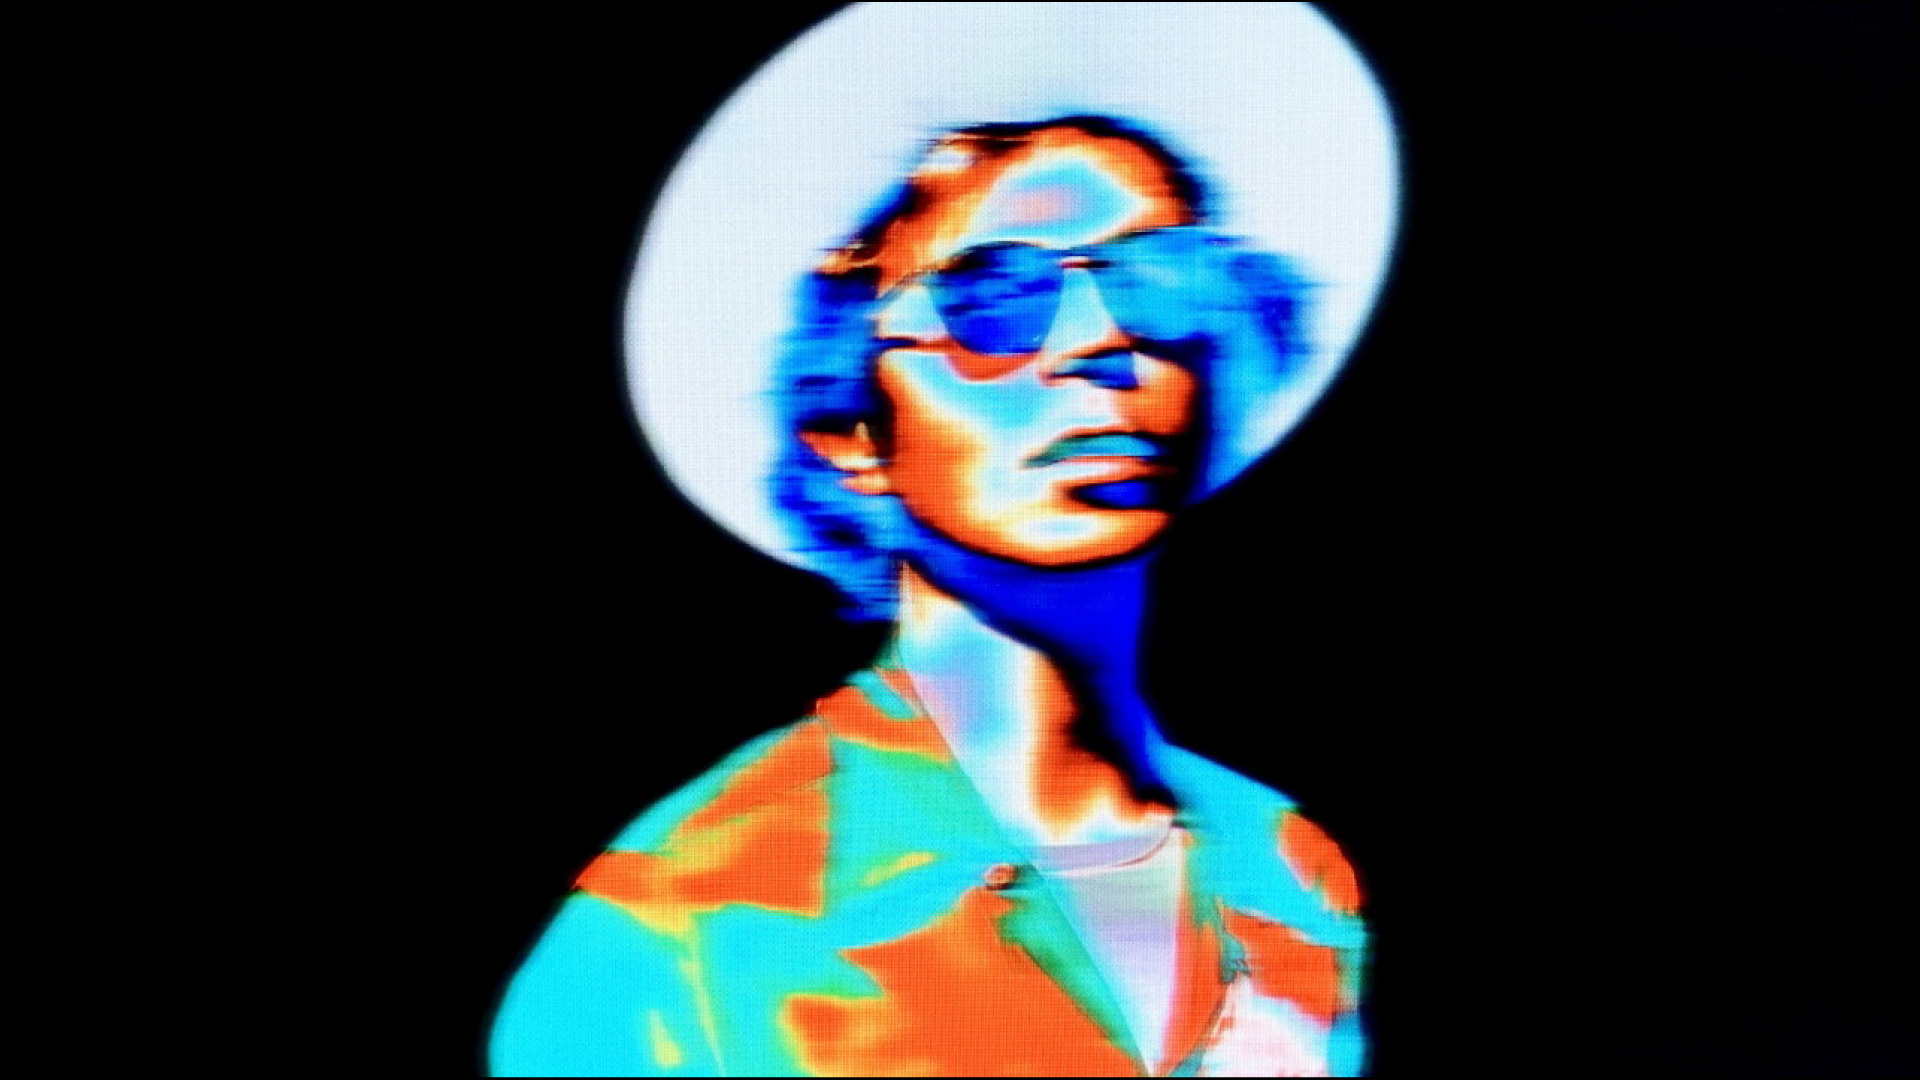 Beck lanza álbum visual en colaboración con la NASA